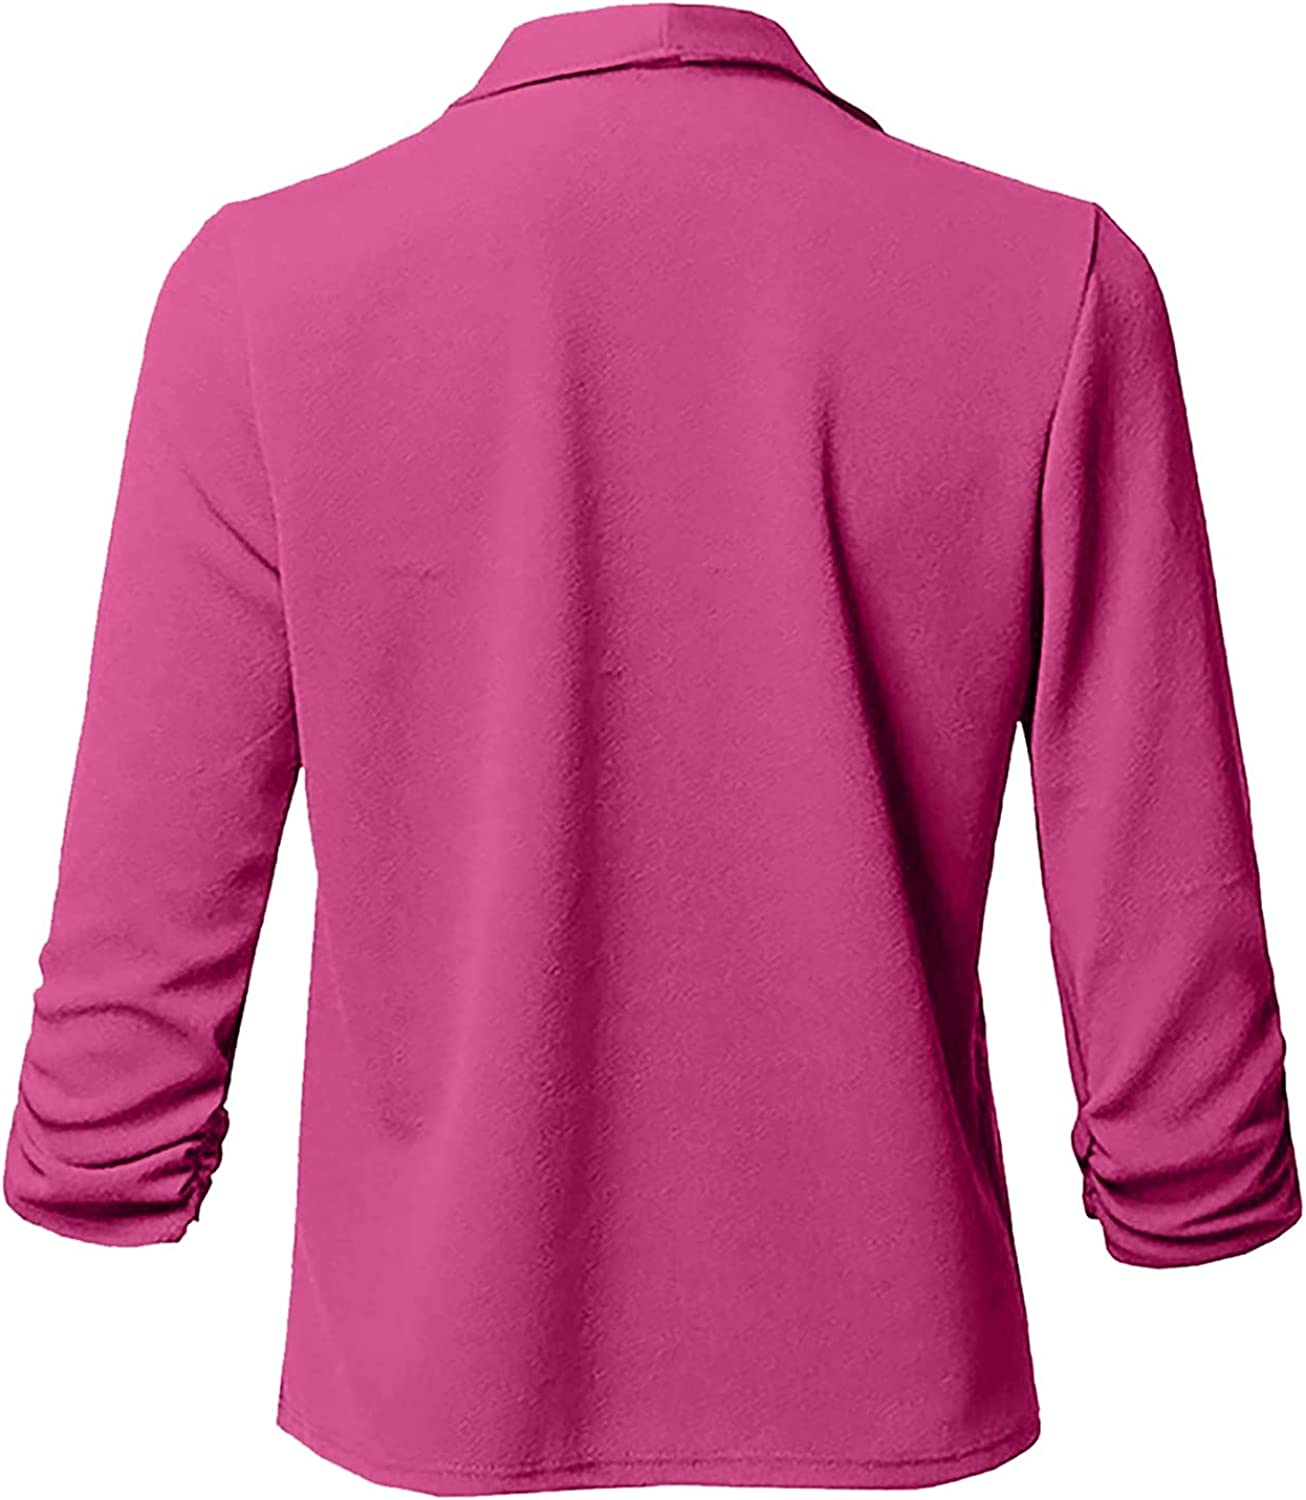 VonVonCo Fashion Womens Long Sleeve Tops Pure Color Pure Open Overcoat Front Cardigan Long Sleeve Casual Jacket Coat